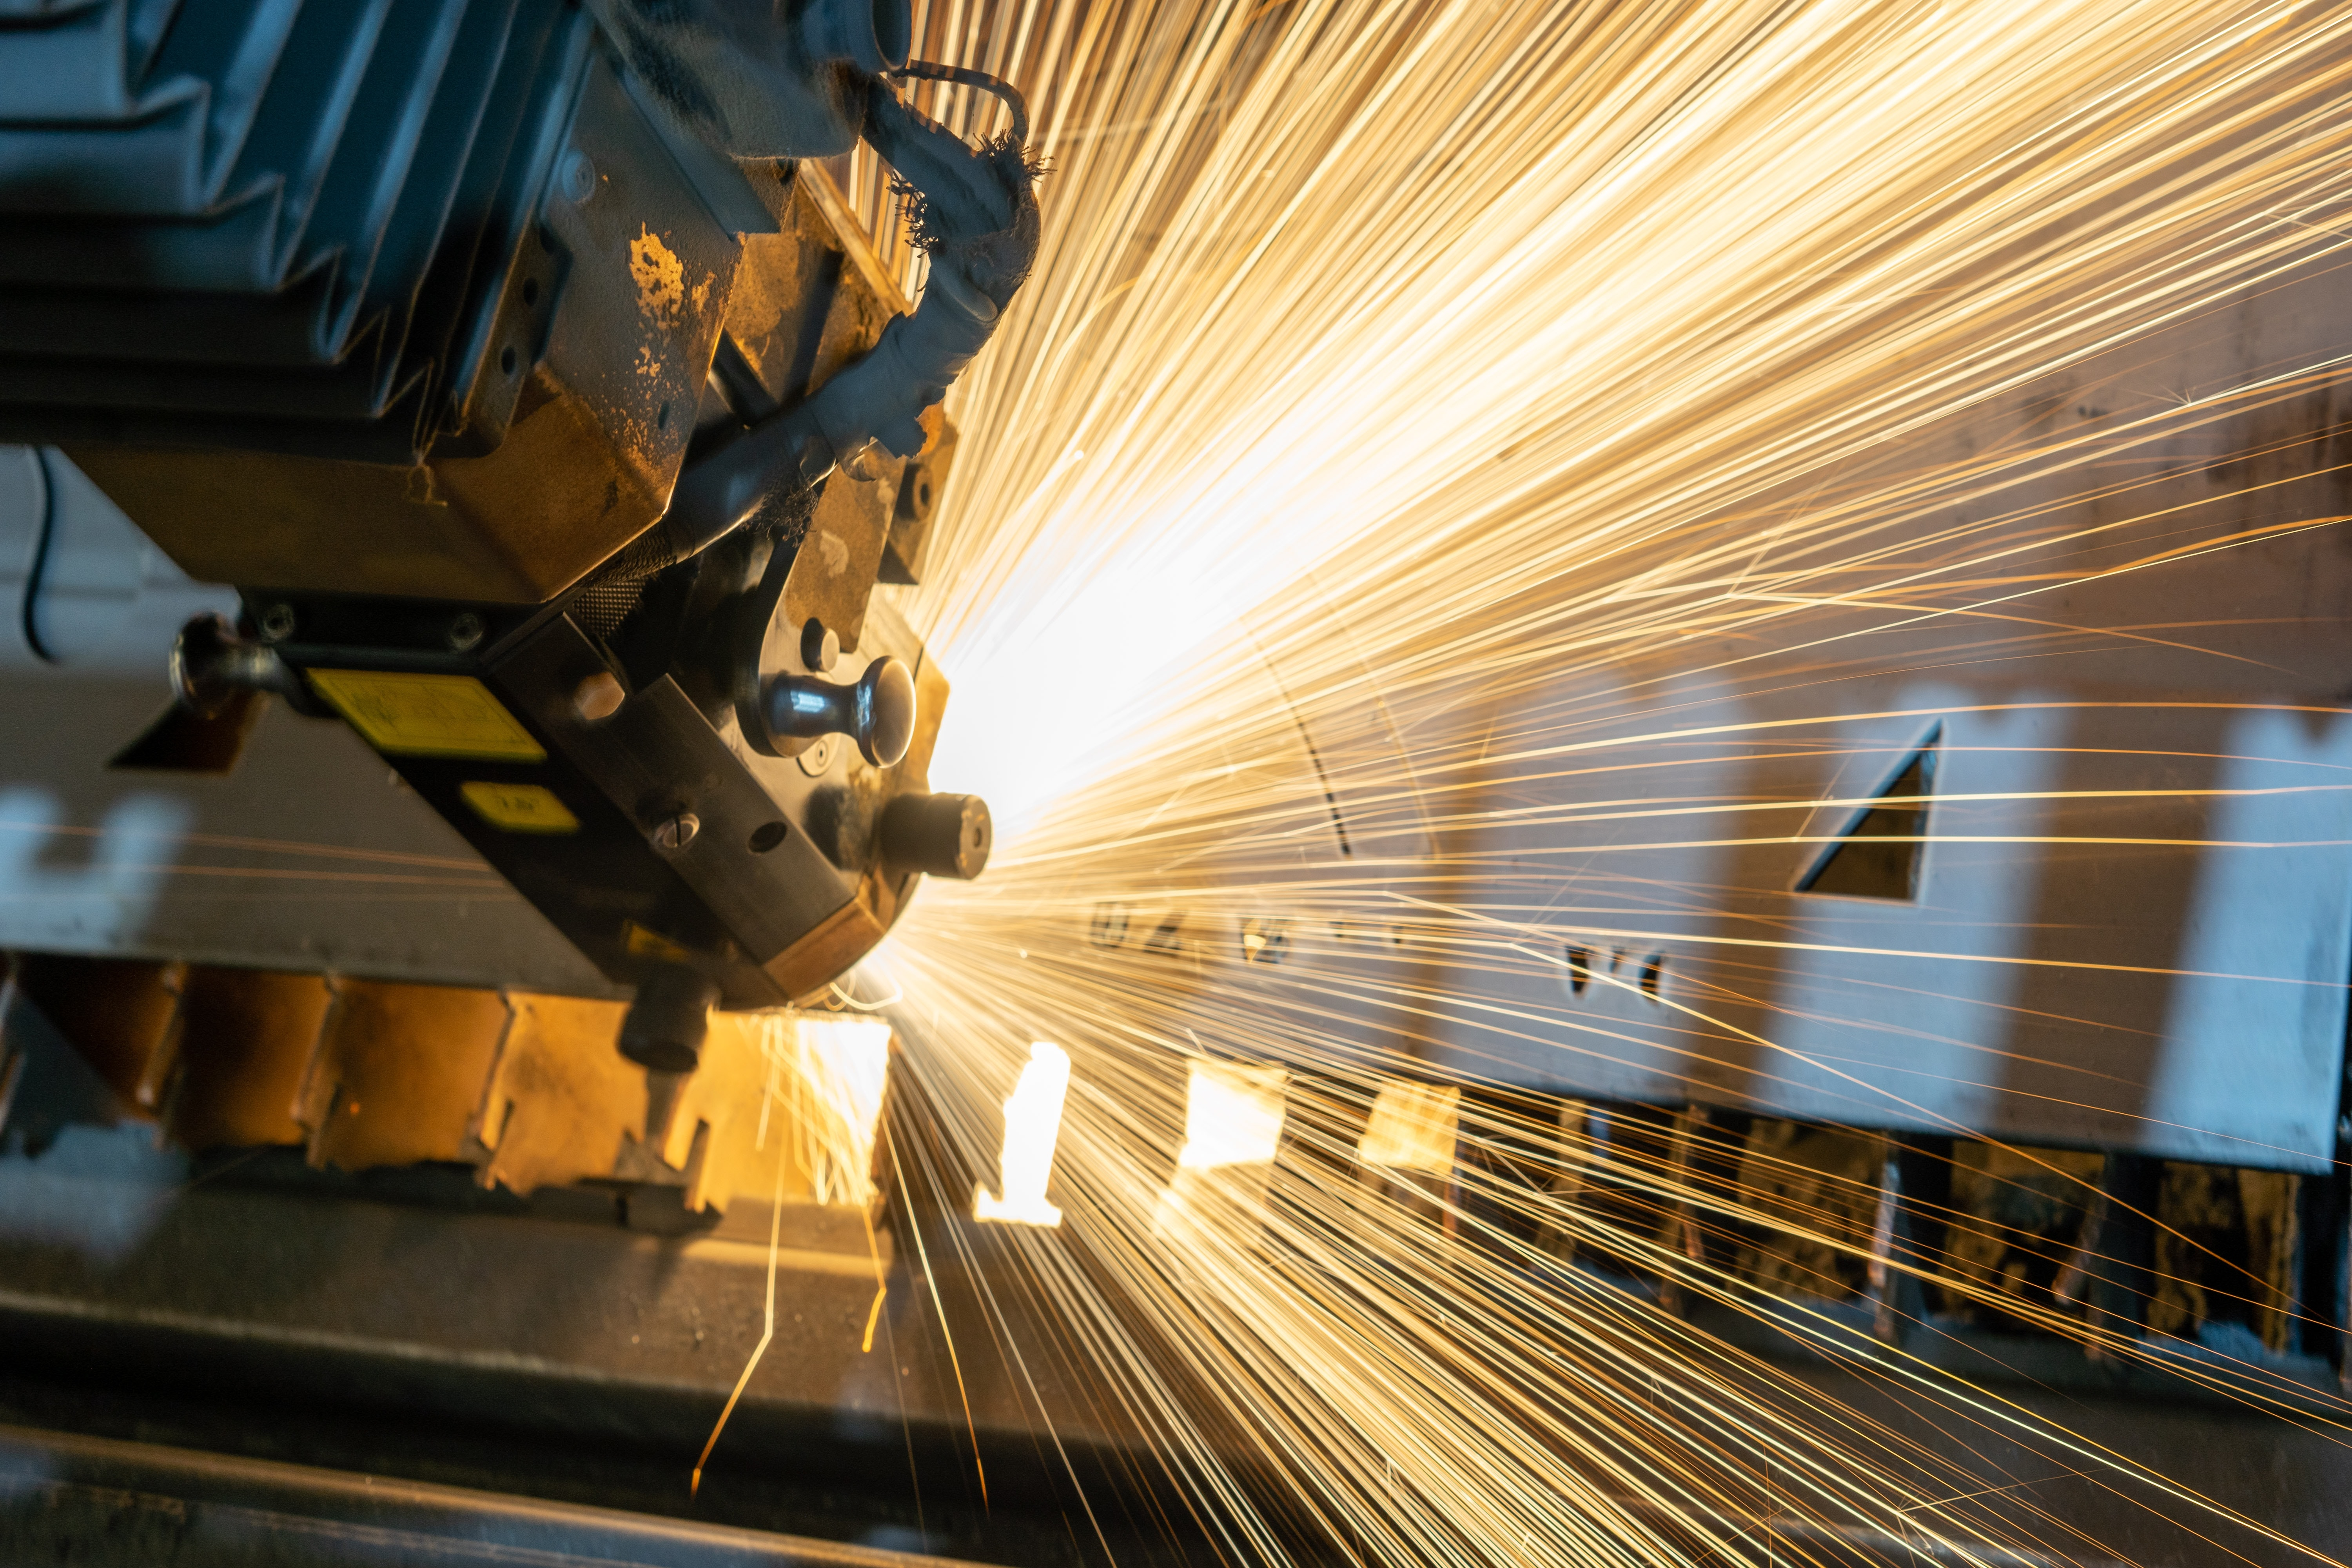 Sparks flying out of manufacturing machine